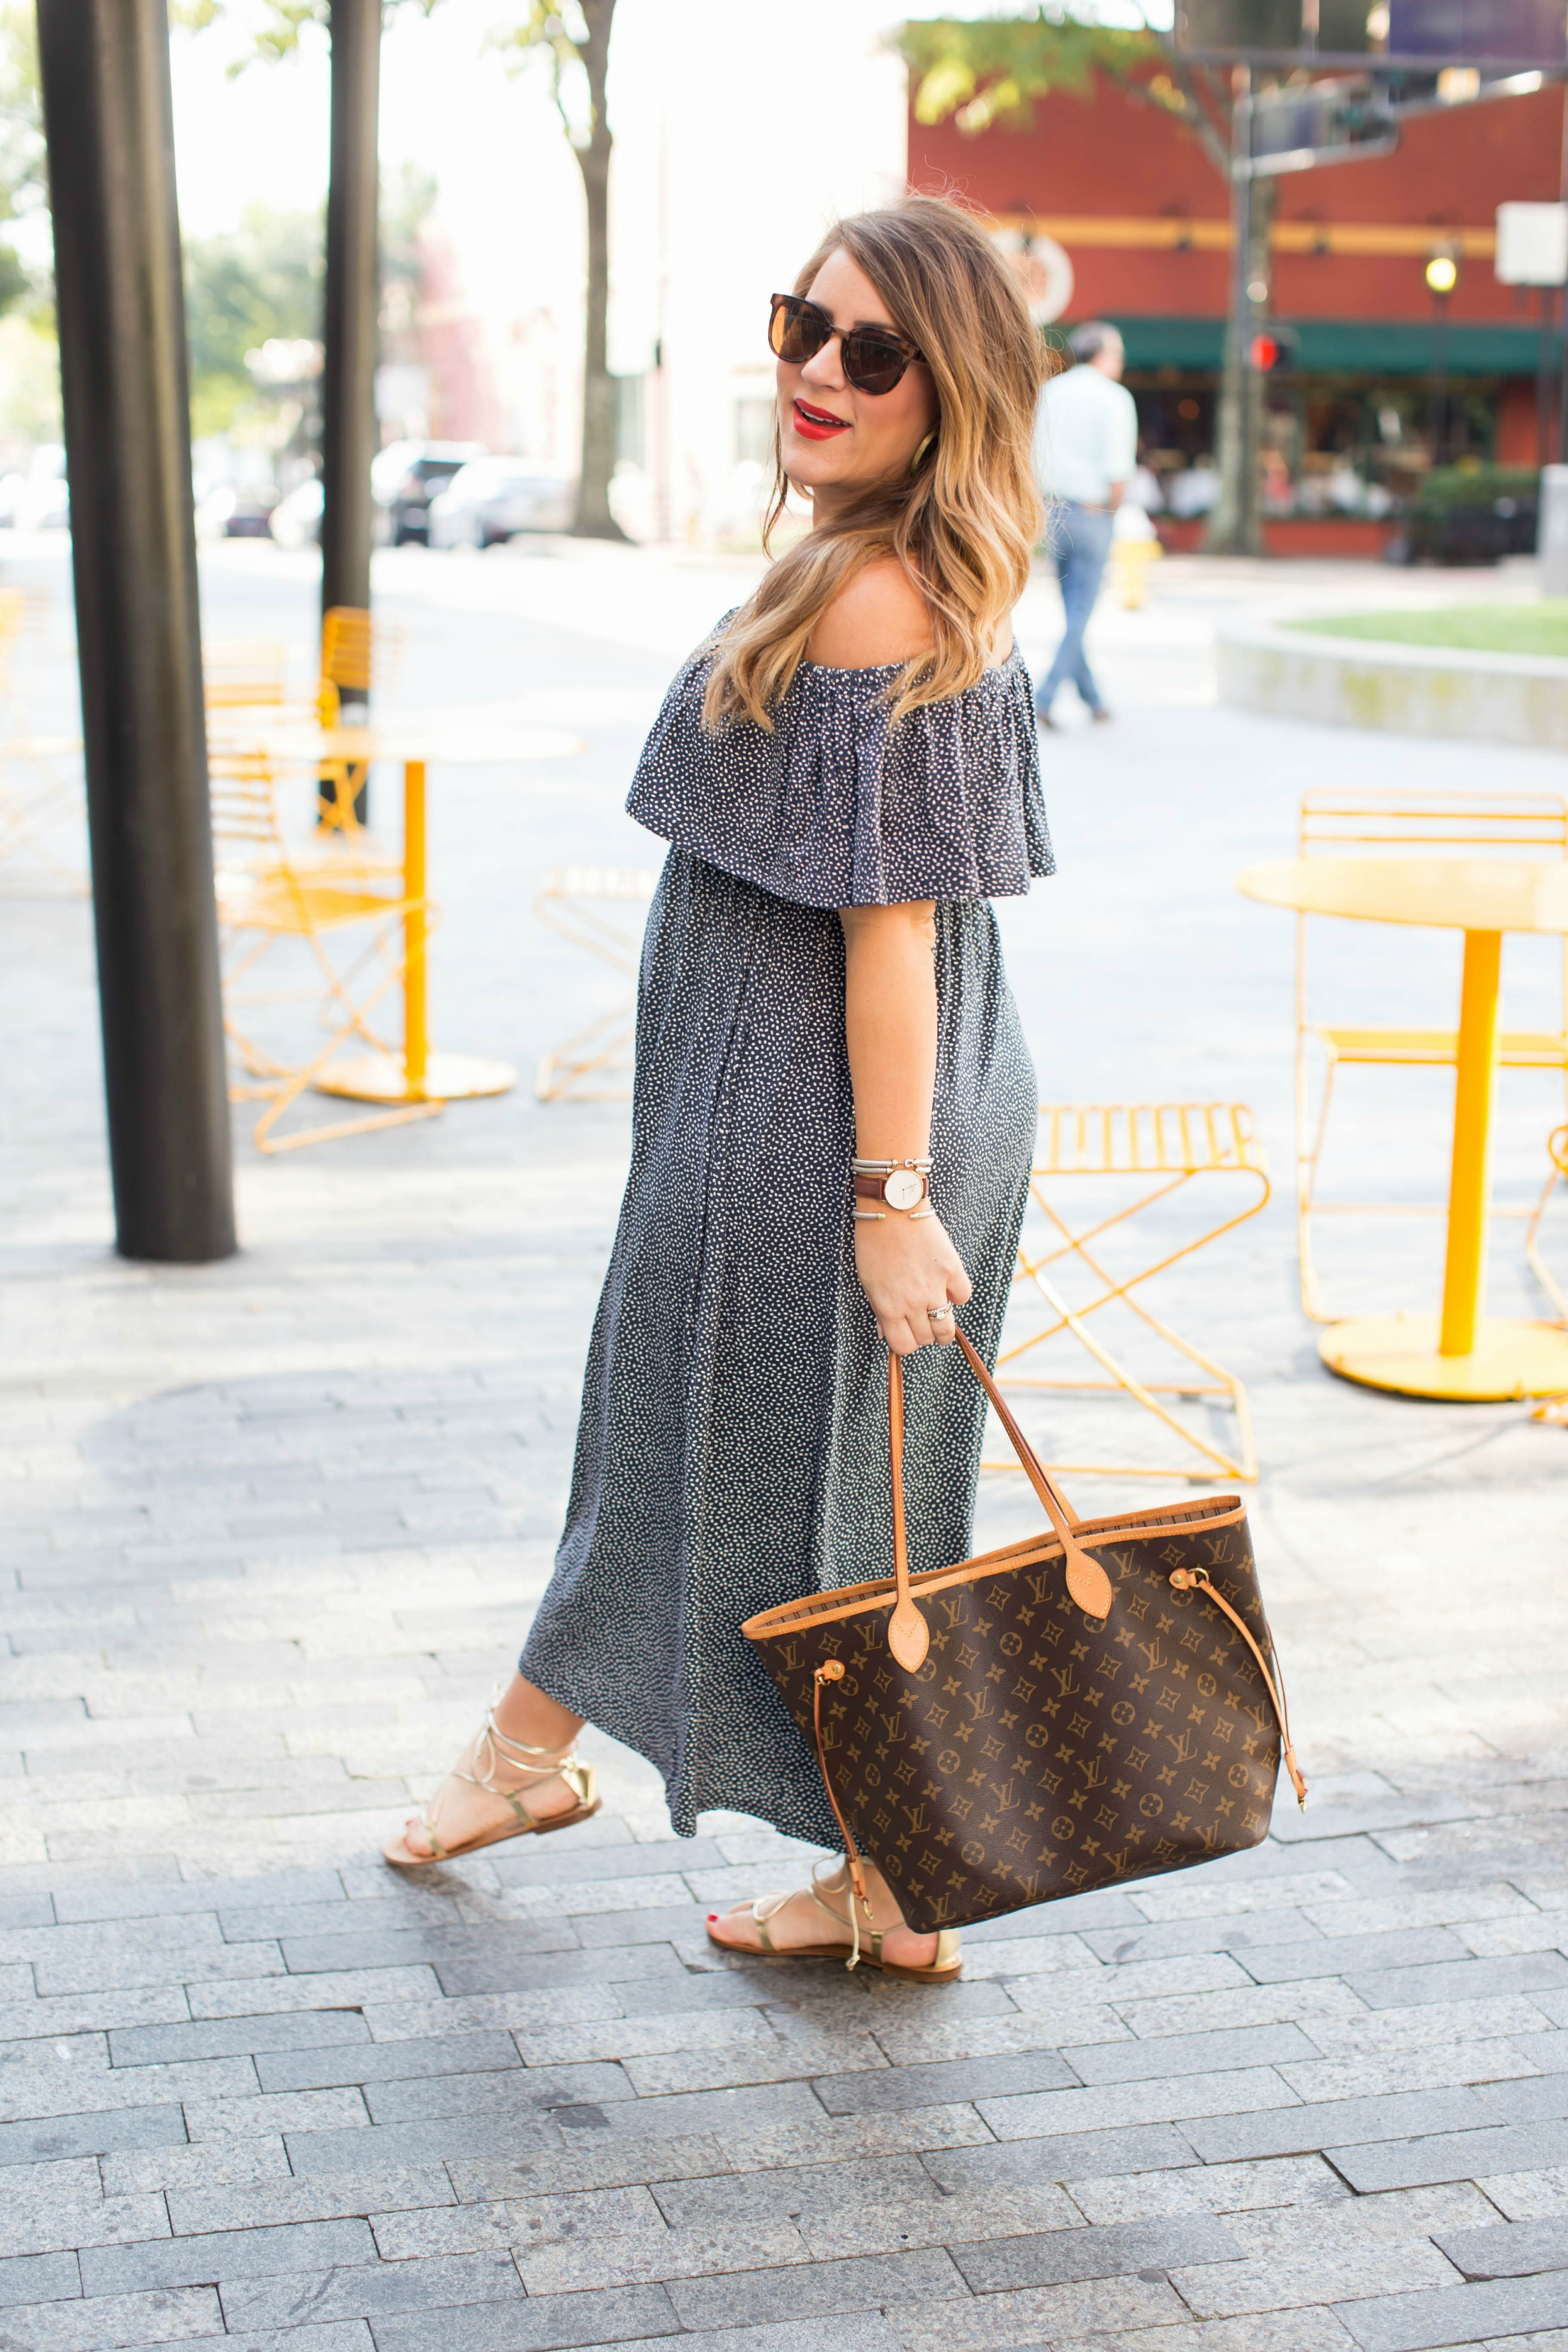 Off the Shoulder Dress for Fall by NC fashion blogger Coffee Beans and Bobby Pins